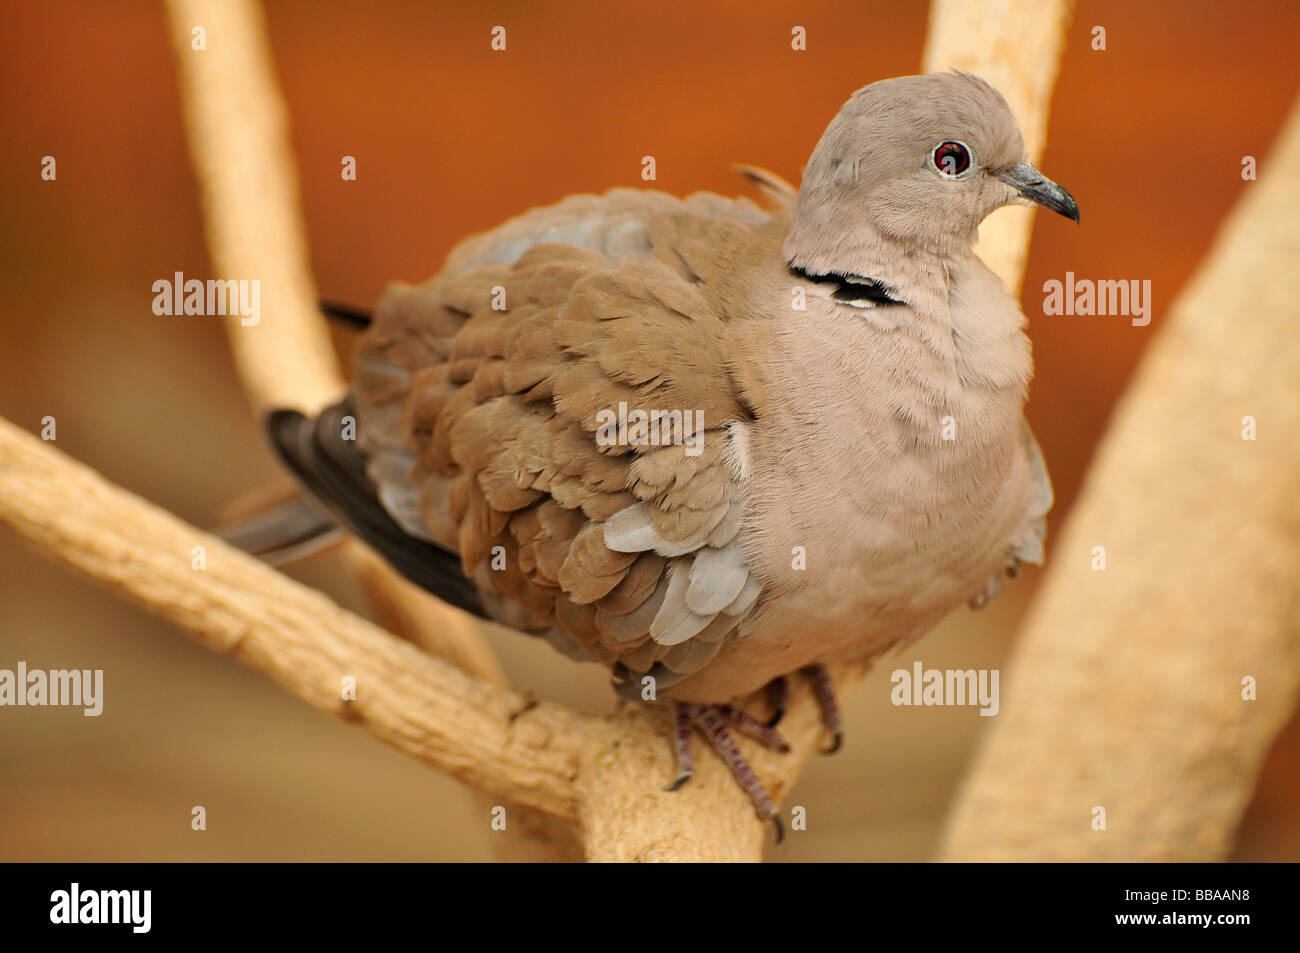 Eurasian Collared Dove (Streptopelia decaocto), in the Al Ain Zoo, Al Ain, Abu Dhabi, United Arab Emirates, Arabia, - Stock Image